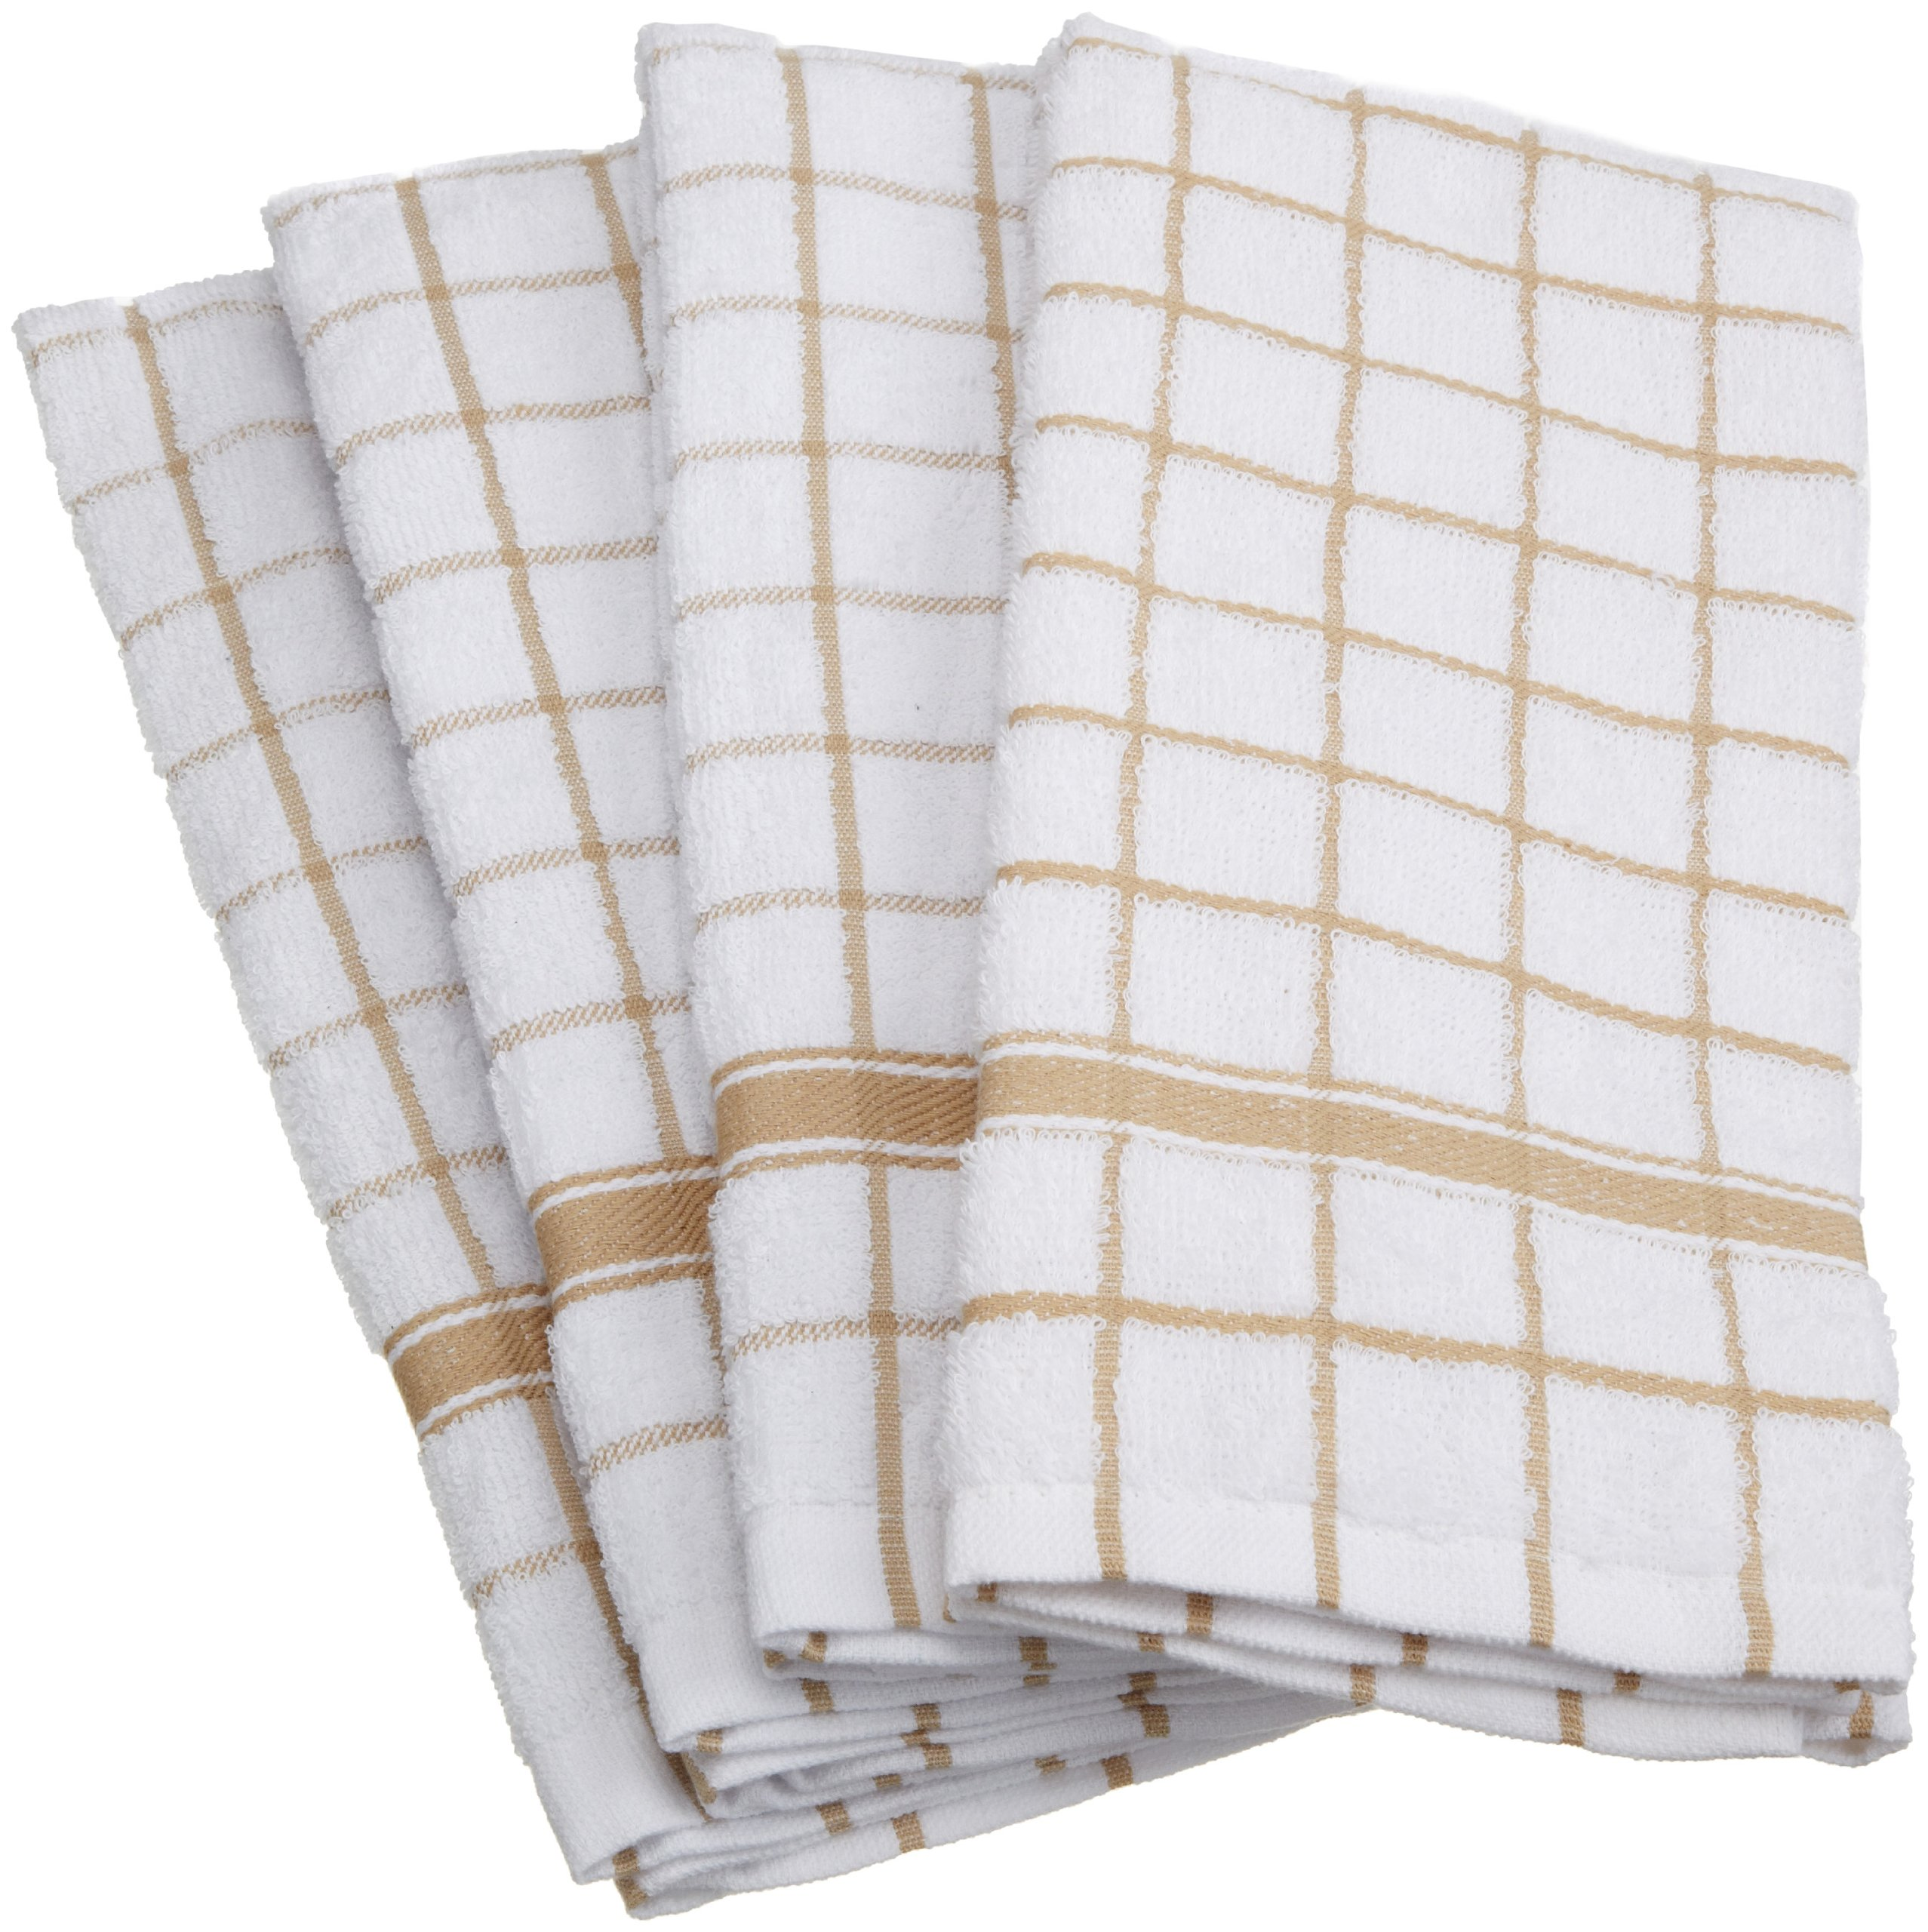 DII Cotton Terry Windowpane Dish Towels, 16 x 26'' Set of 4, Machine Washable and Ultra Absorbent Kitchen Bar Towels-Pebble